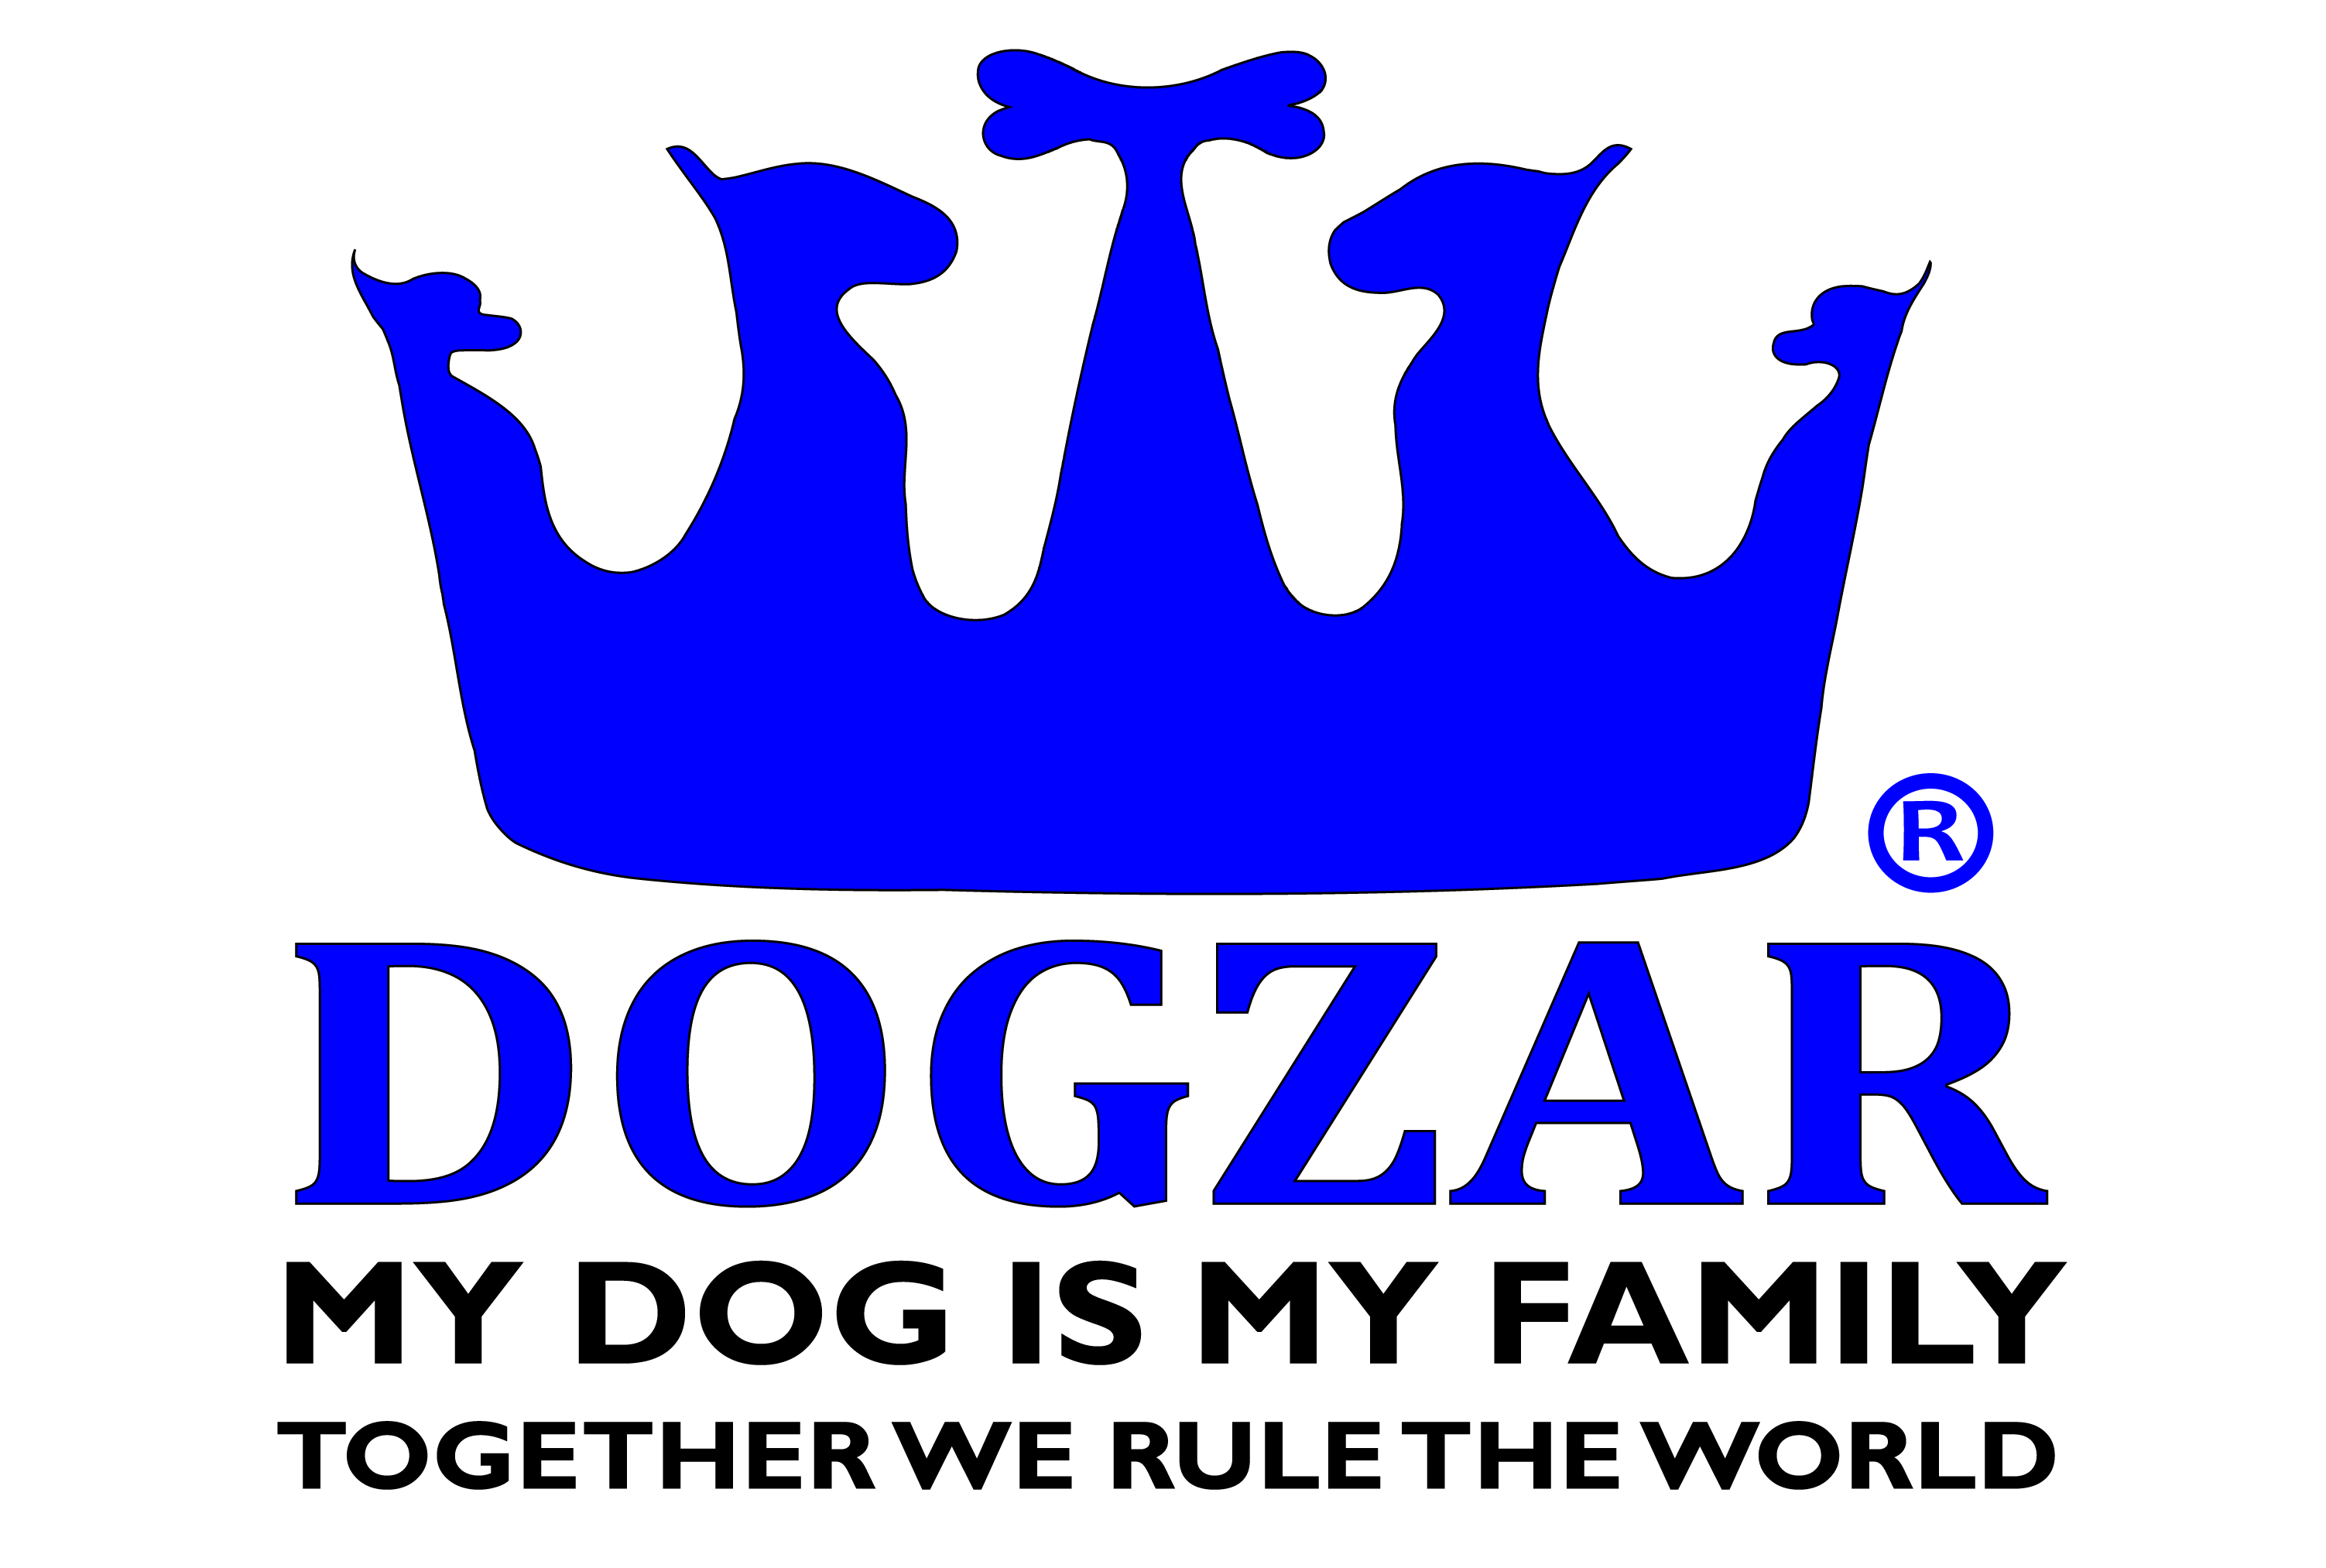 DOGZAR® My DOG is My Family!